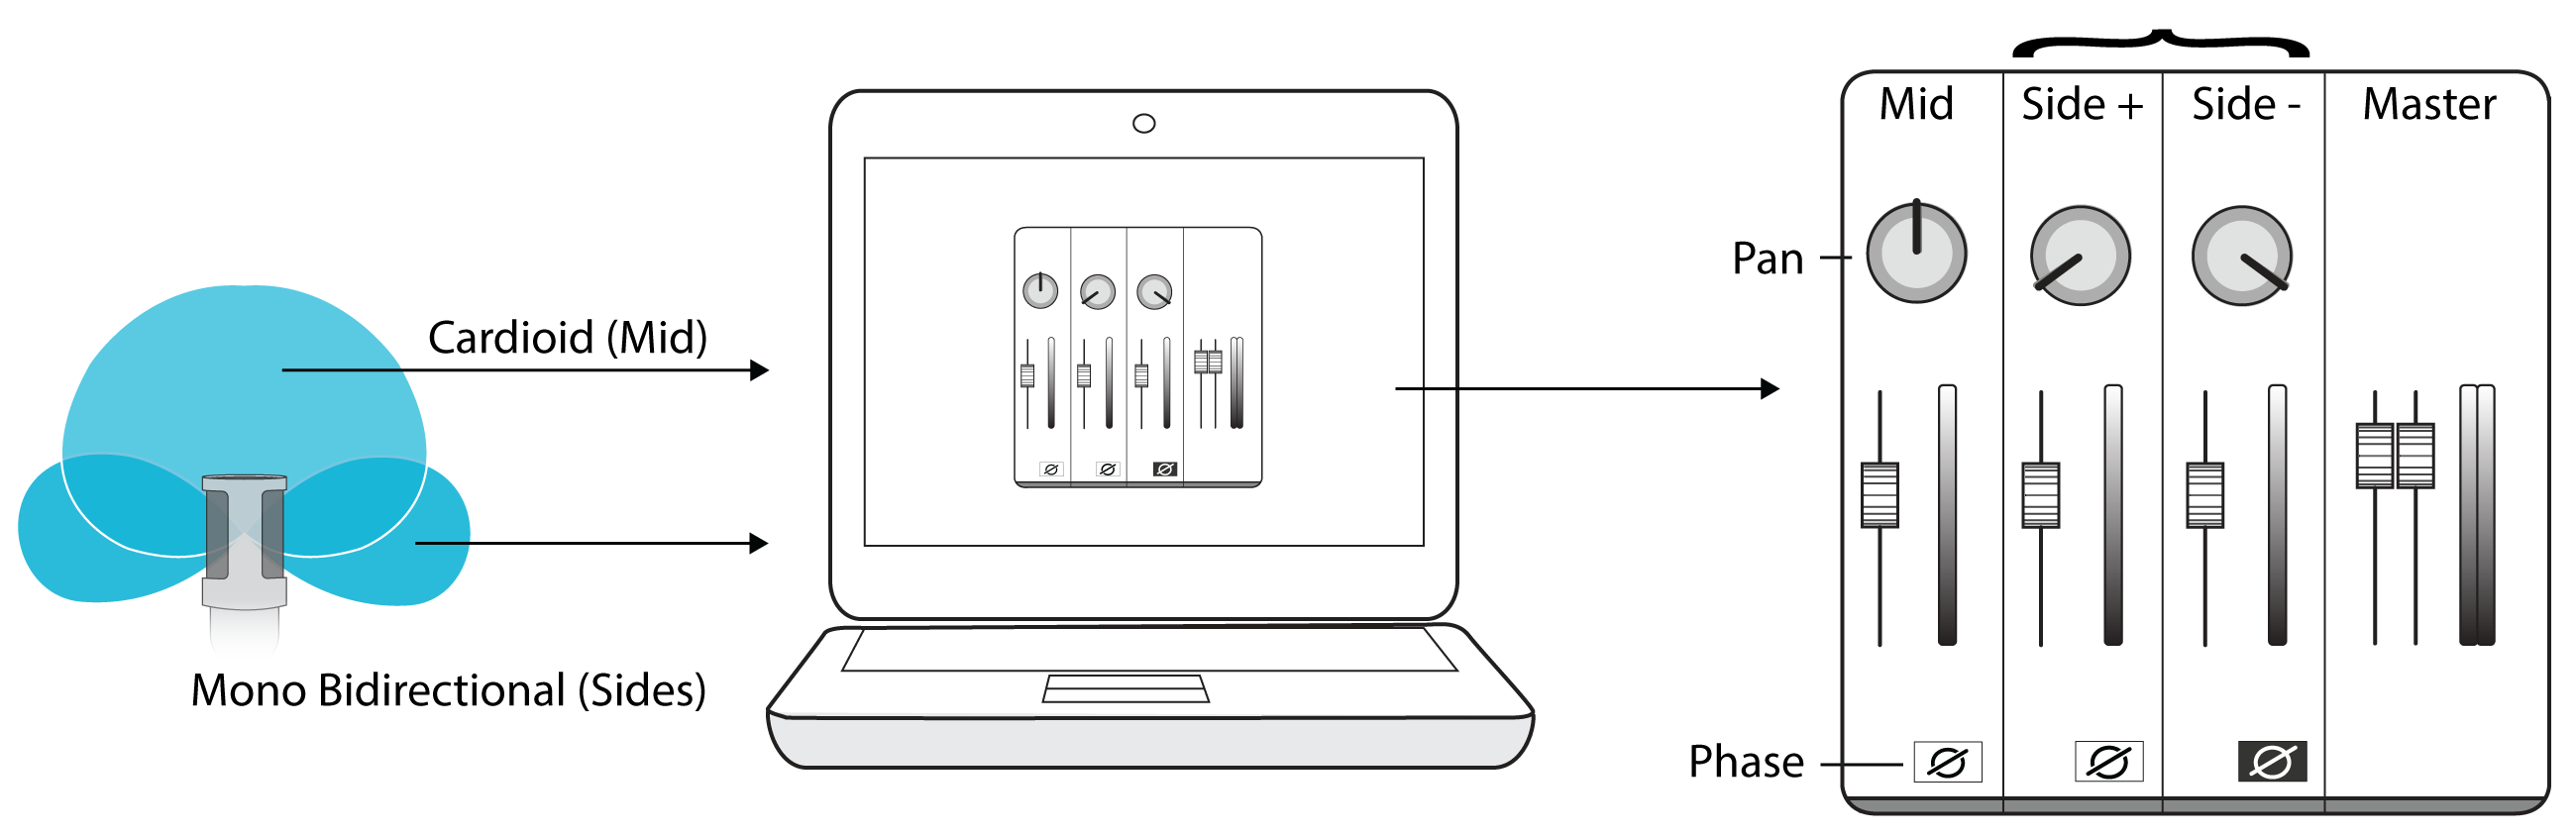 Illustration of decoding raw mid-side audio with a laptop